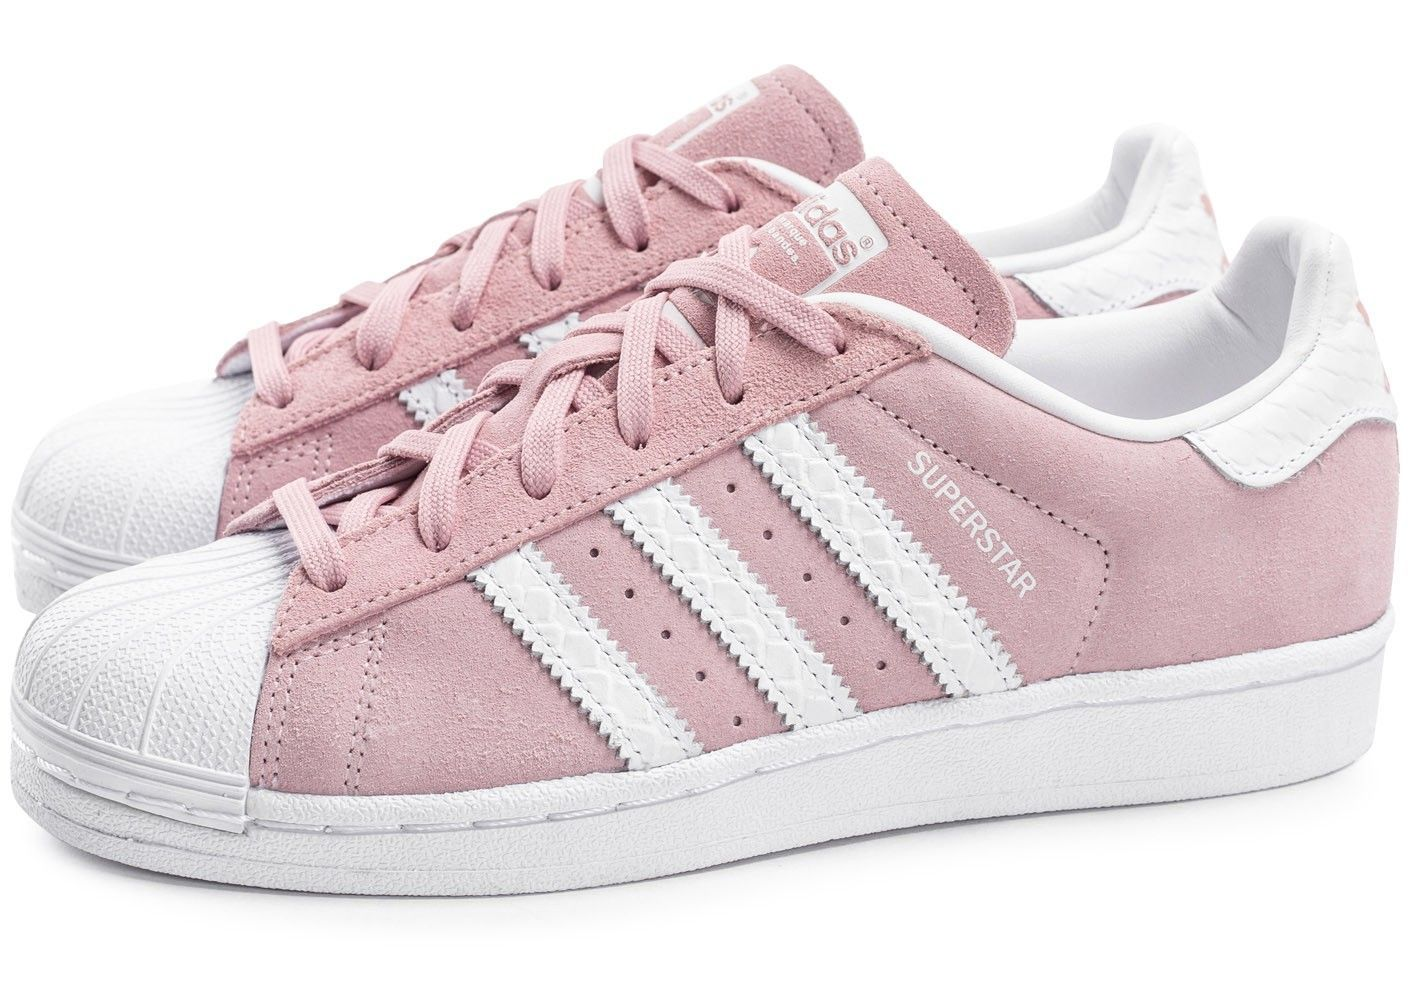 Adidas Women Shoes Chaussures Adidas Superstar Suede Rose Pale